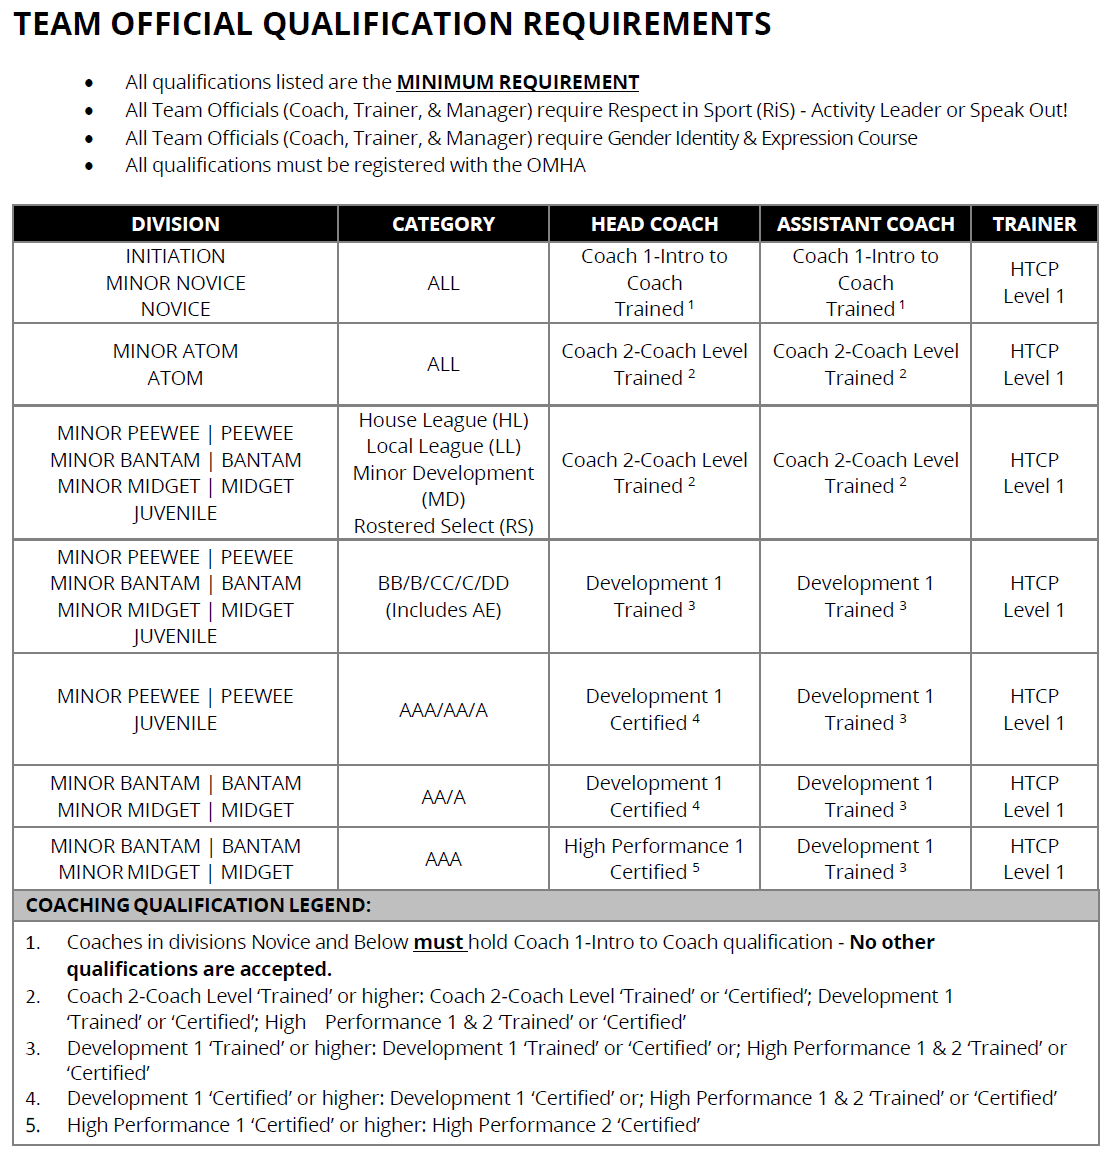 Qualification Requirements